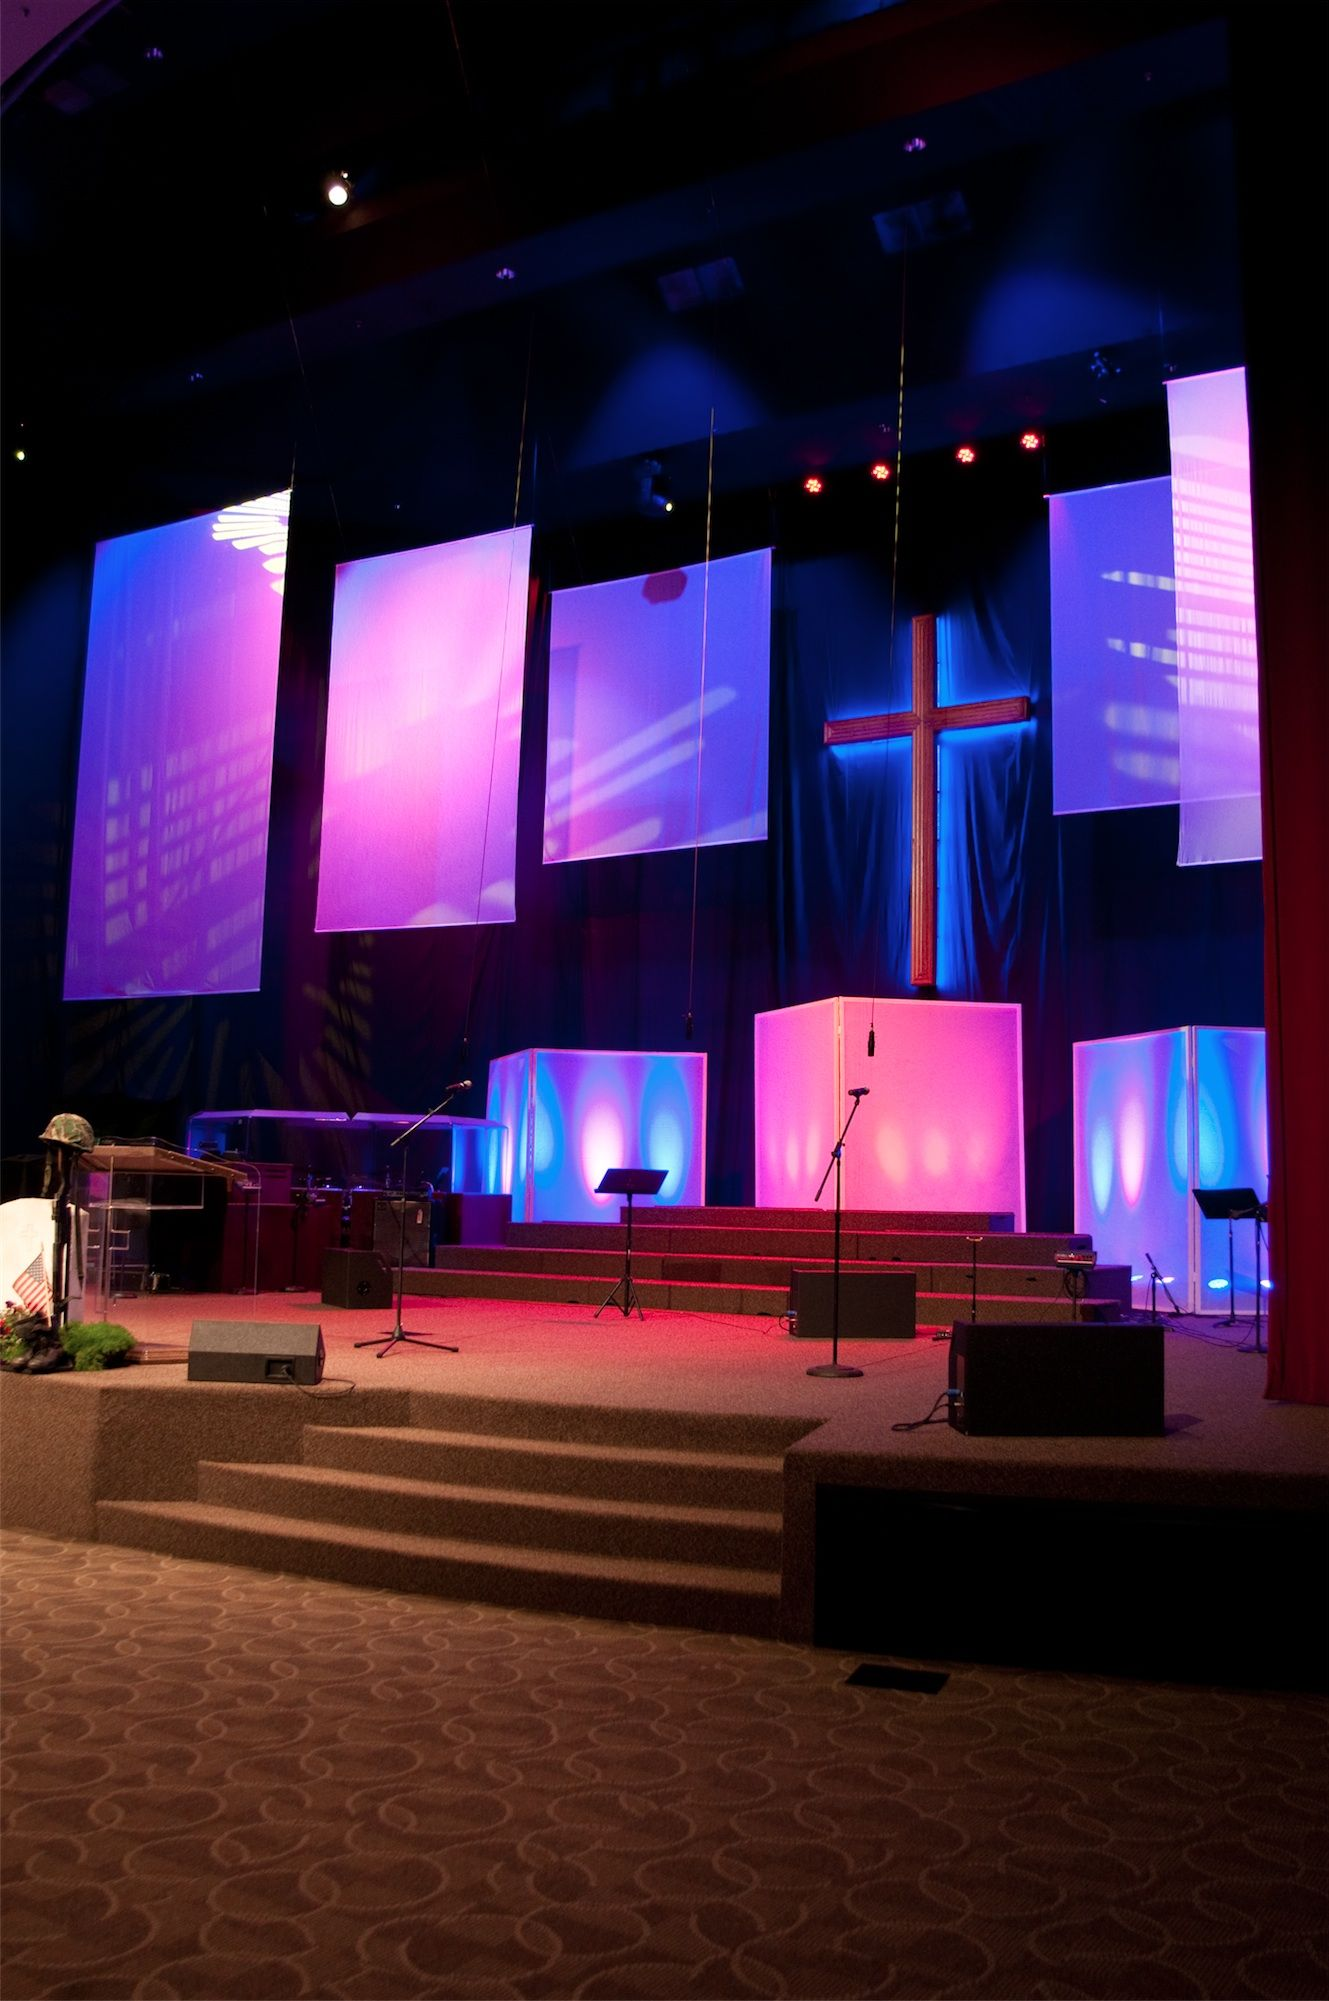 17 best images about church stage design ideas on pinterest - Church Stage Design Ideas